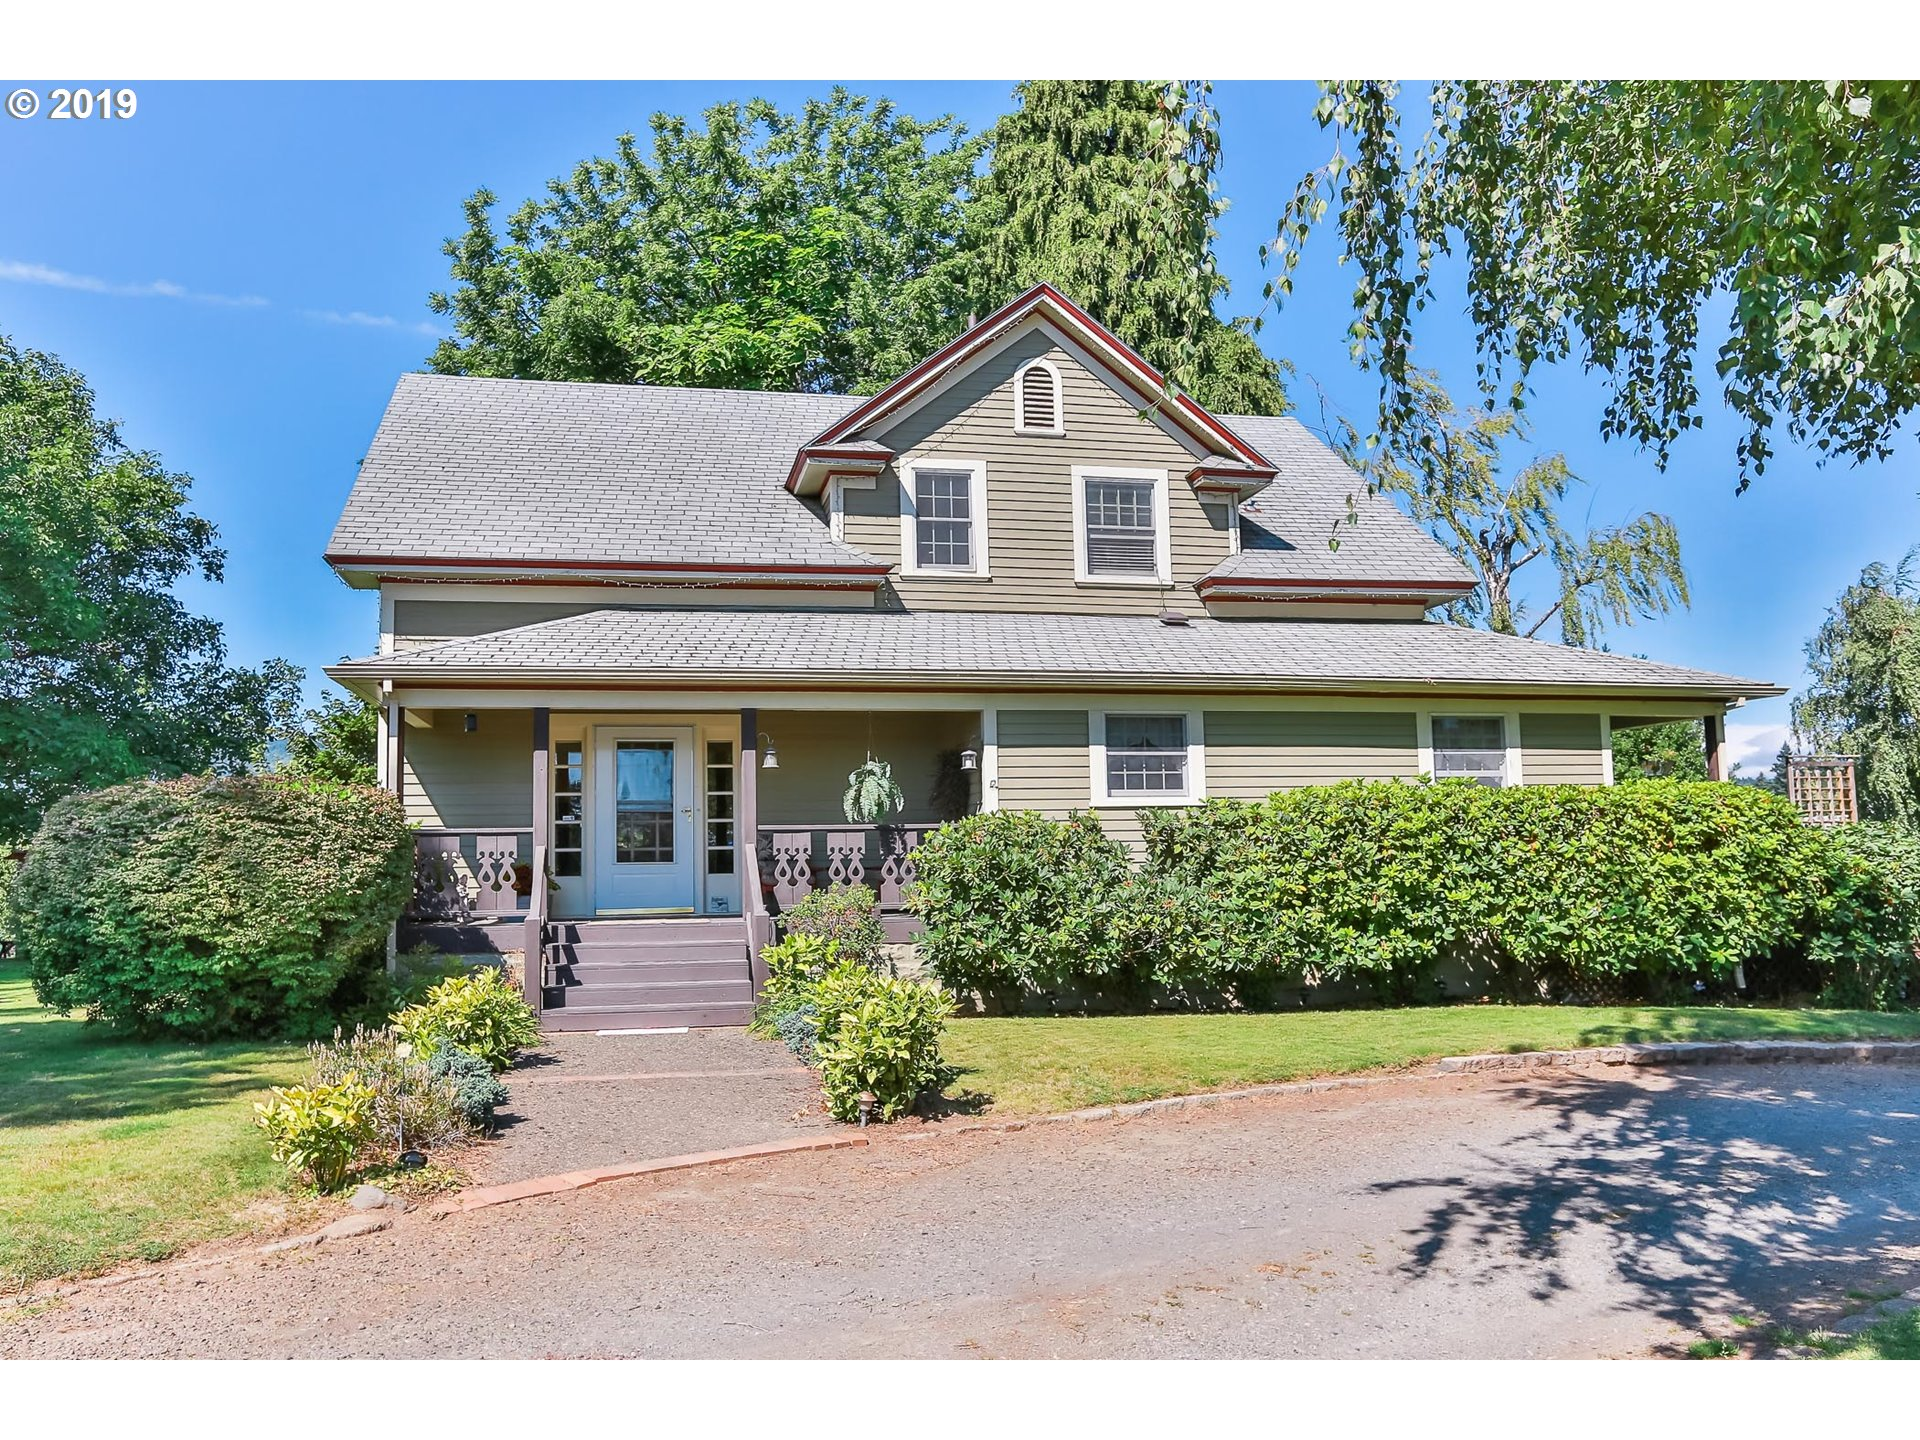 Photo of 4370 PORTLAND DR Hood River OR 97031